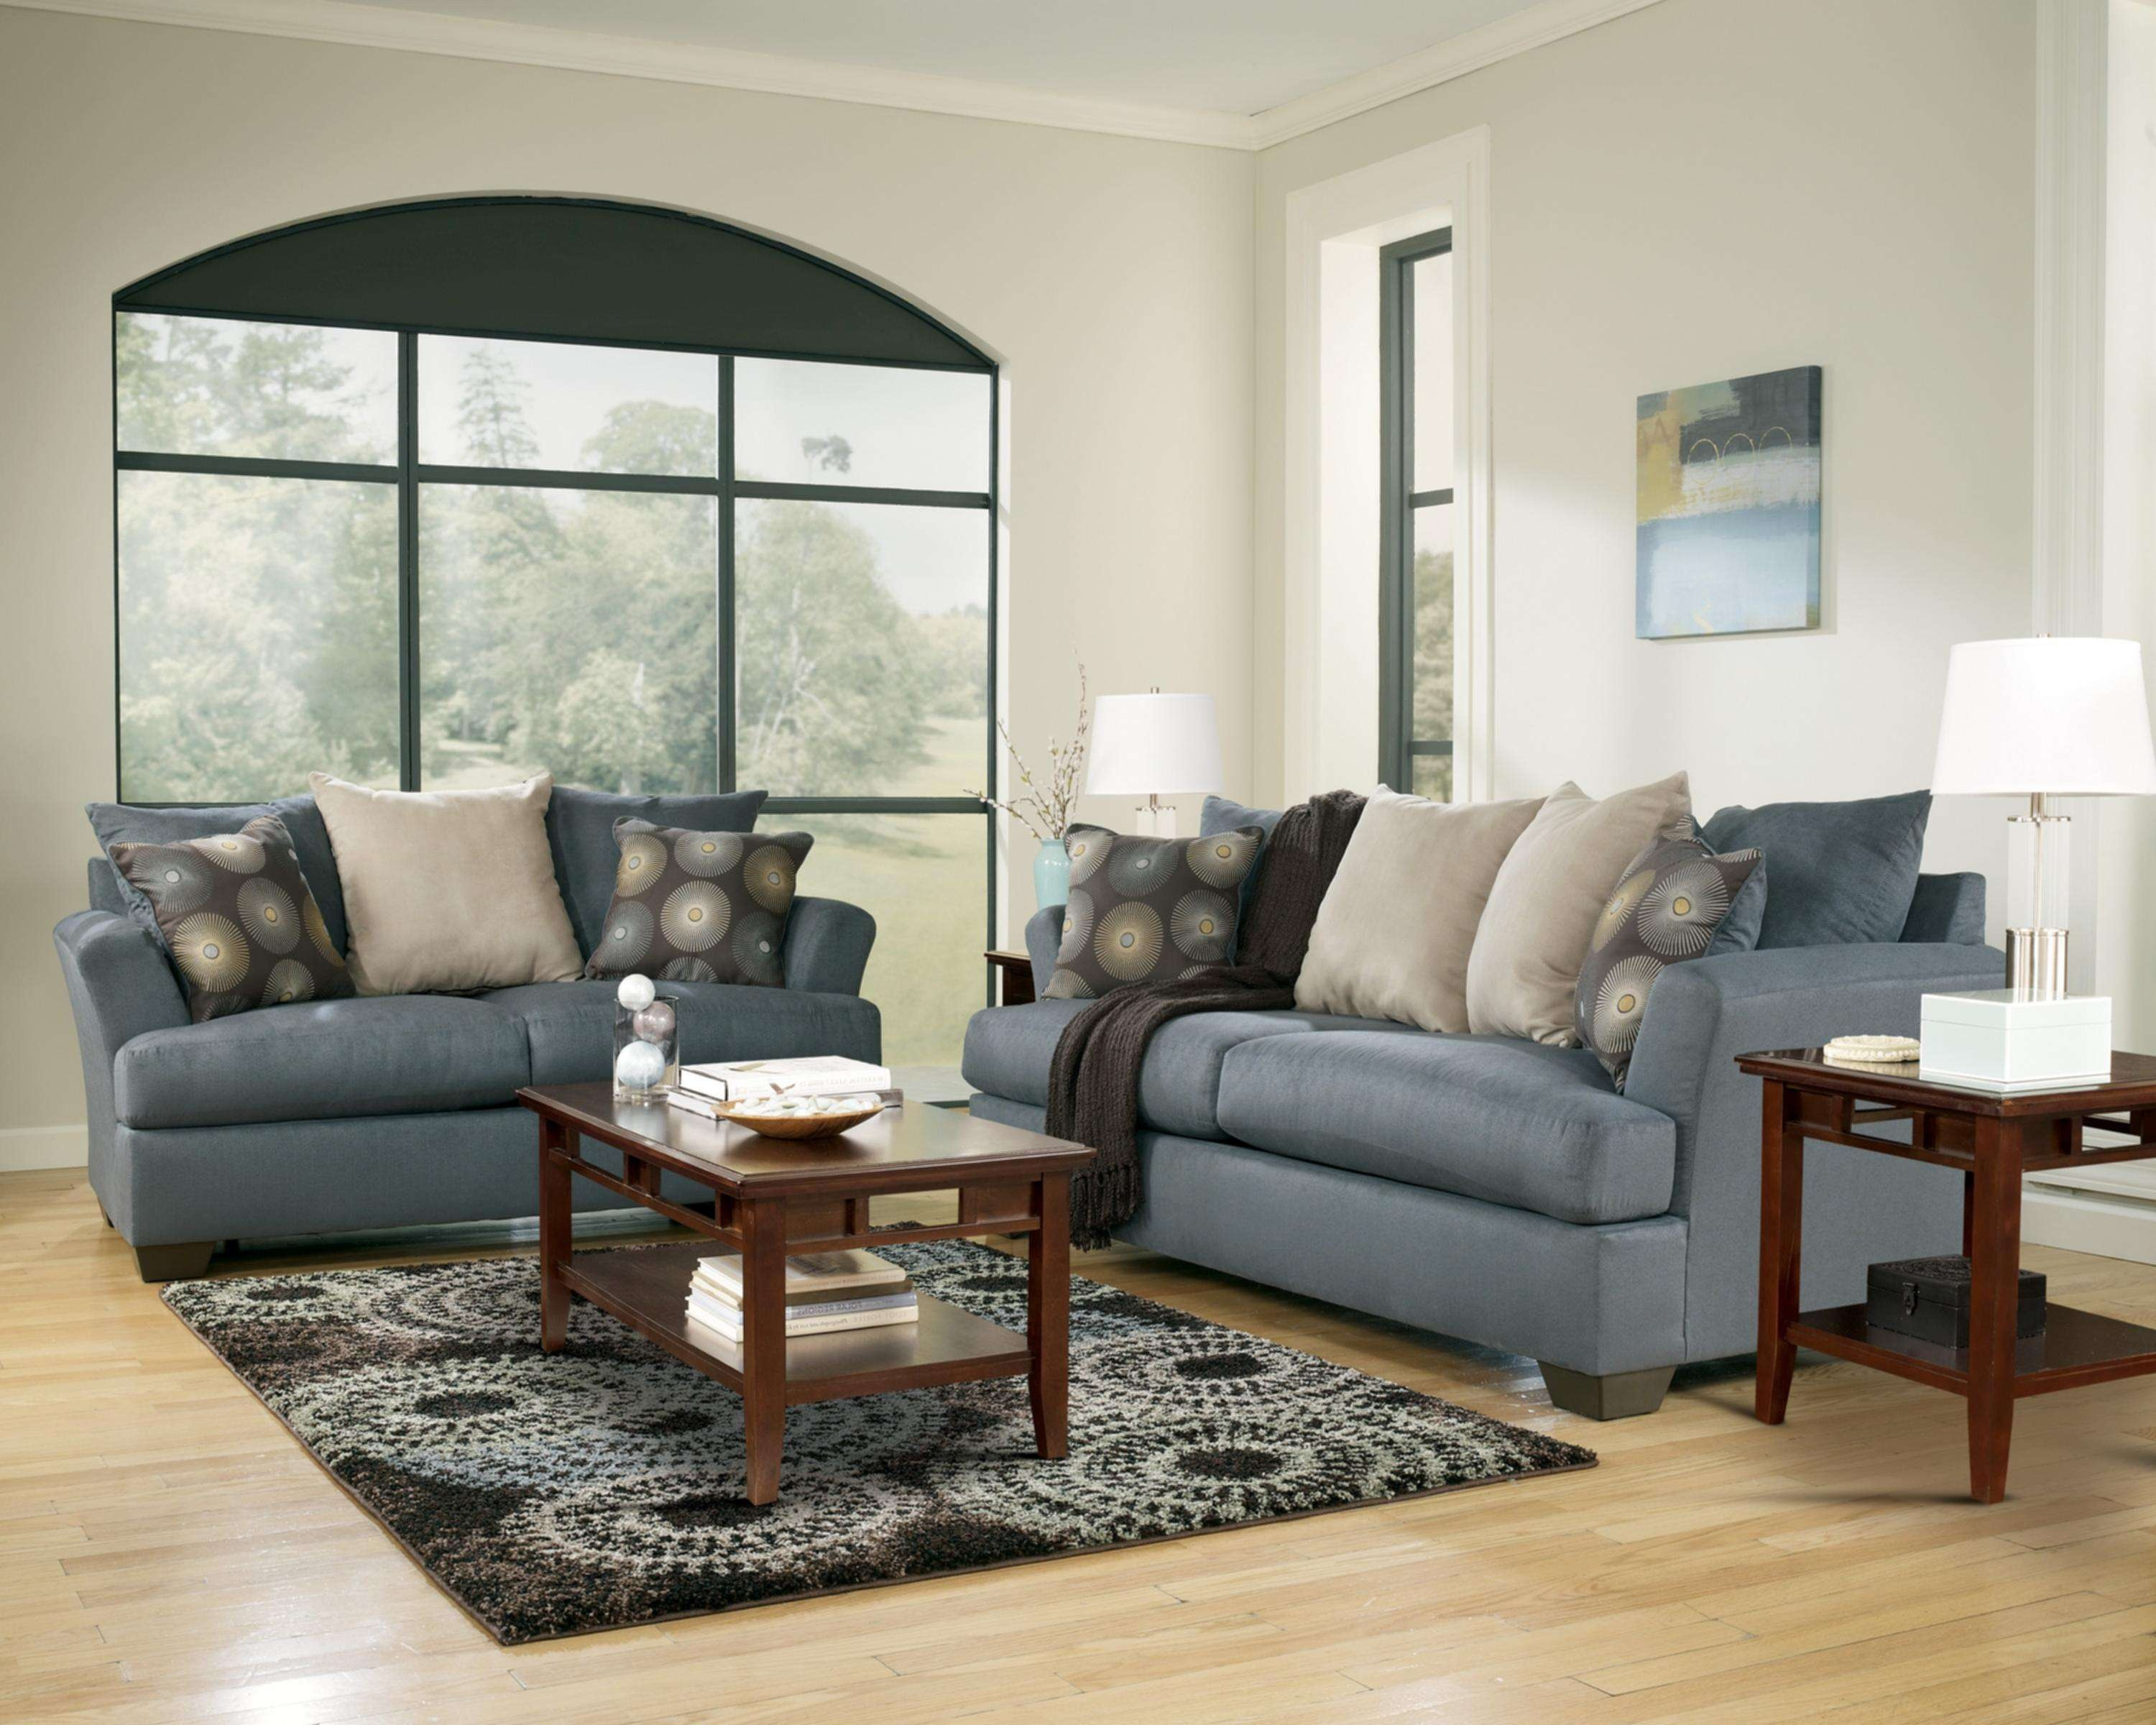 Interesting Design Aarons Furniture Living Room Set Aarons Living within 15 Some of the Coolest Ideas How to Improve Aarons Living Room Sets